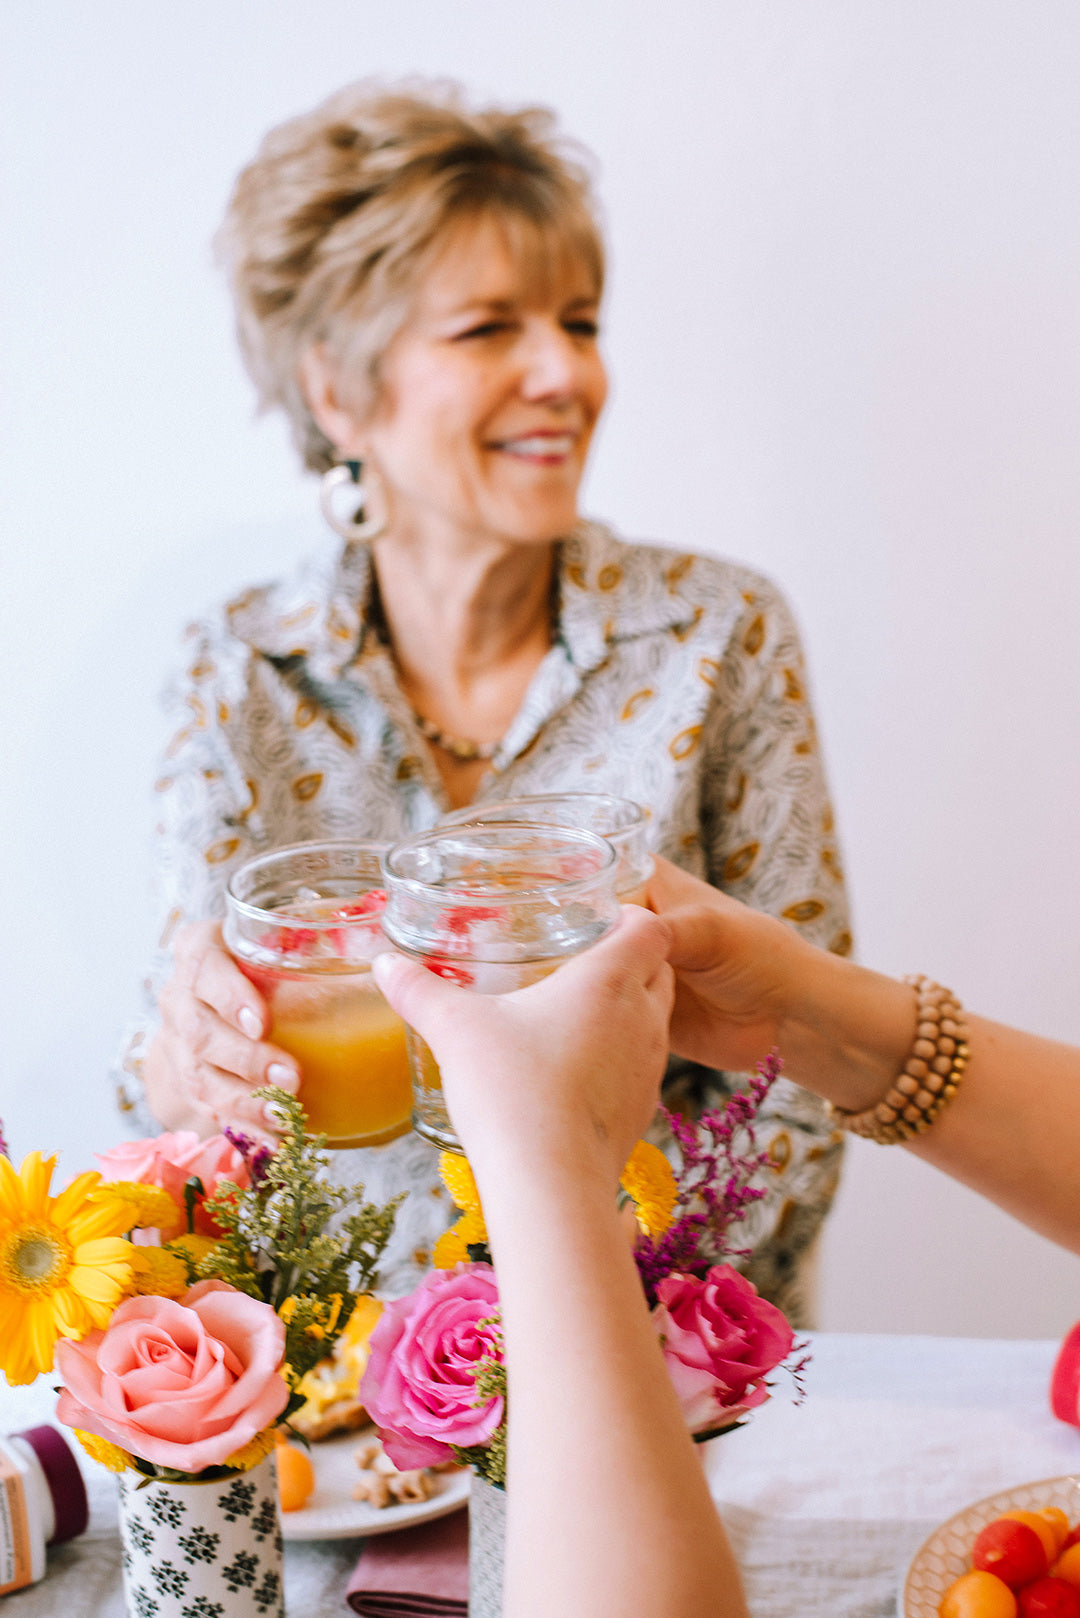 View of grandmother in printed blouse, sitting behind a vase of flowers, and cheers-ing her drink with mother and daughter's hands.